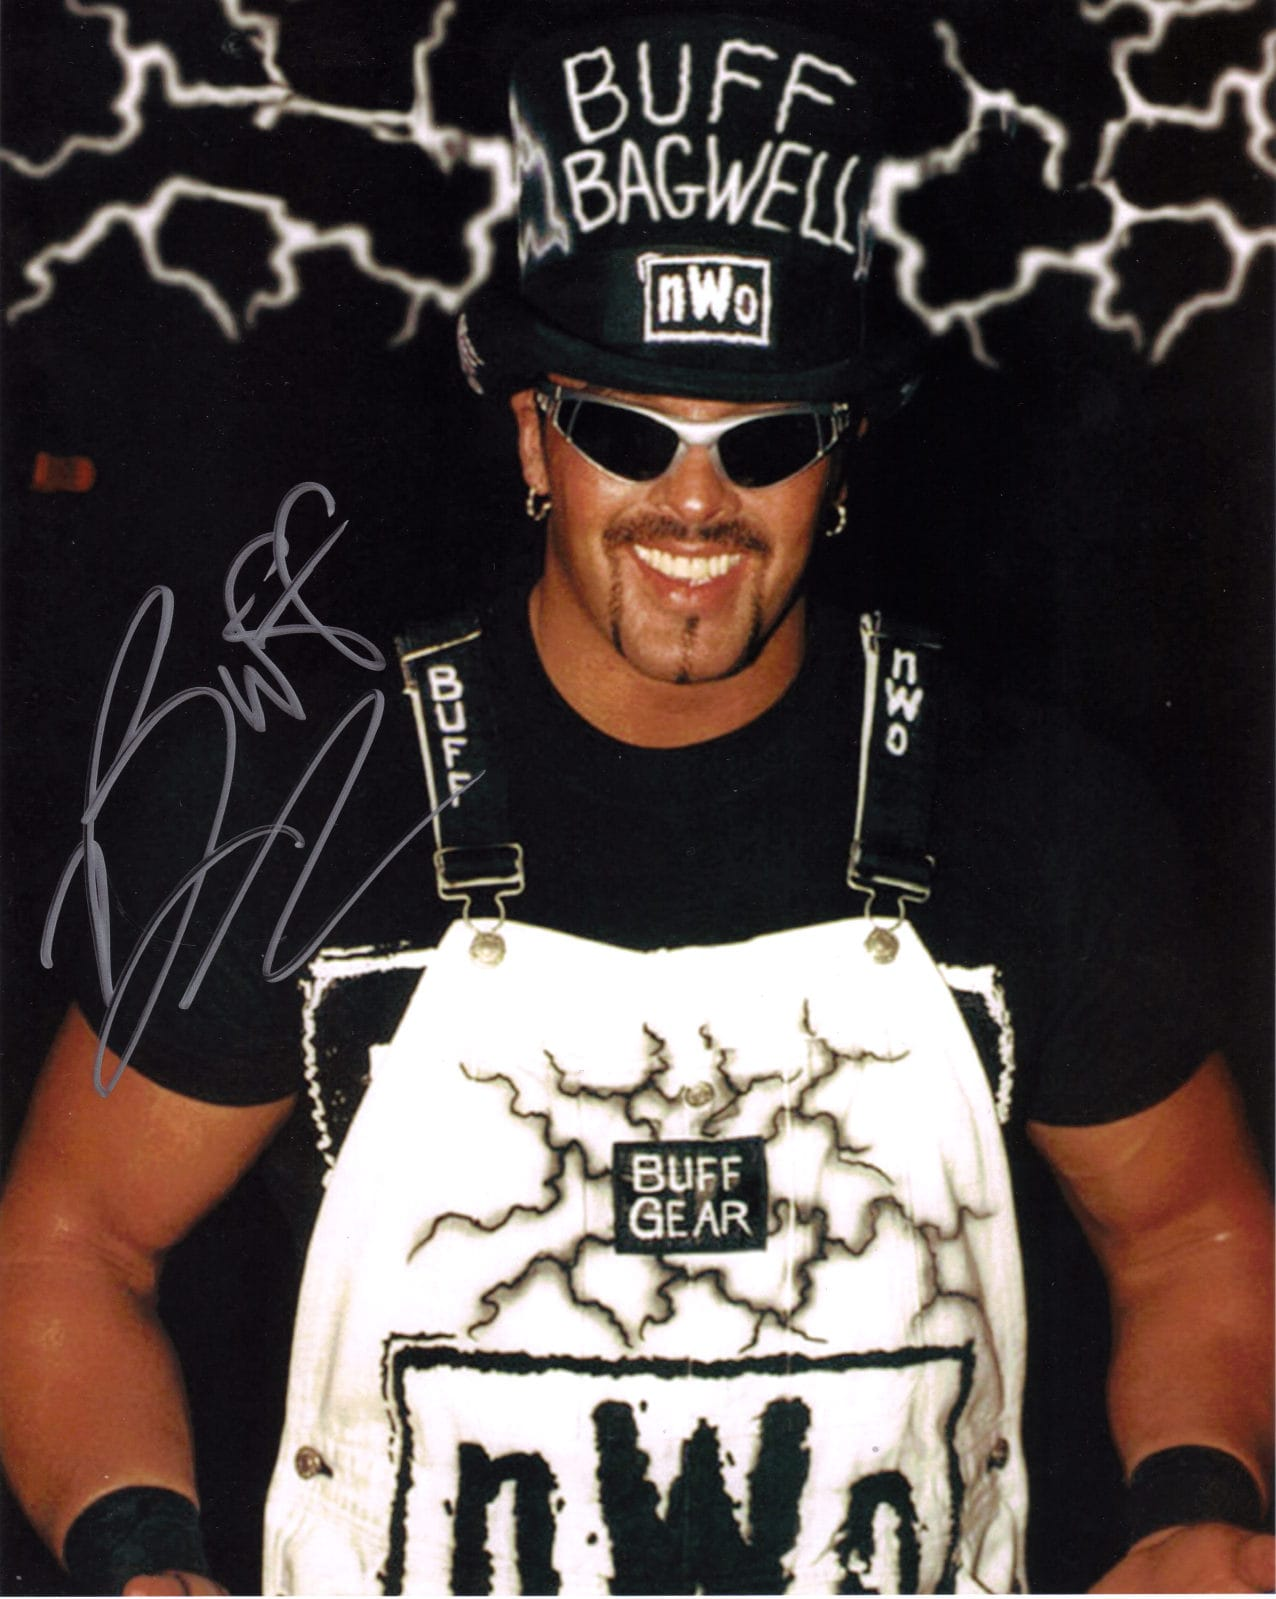 Buff Bagwell Wallpapers hd